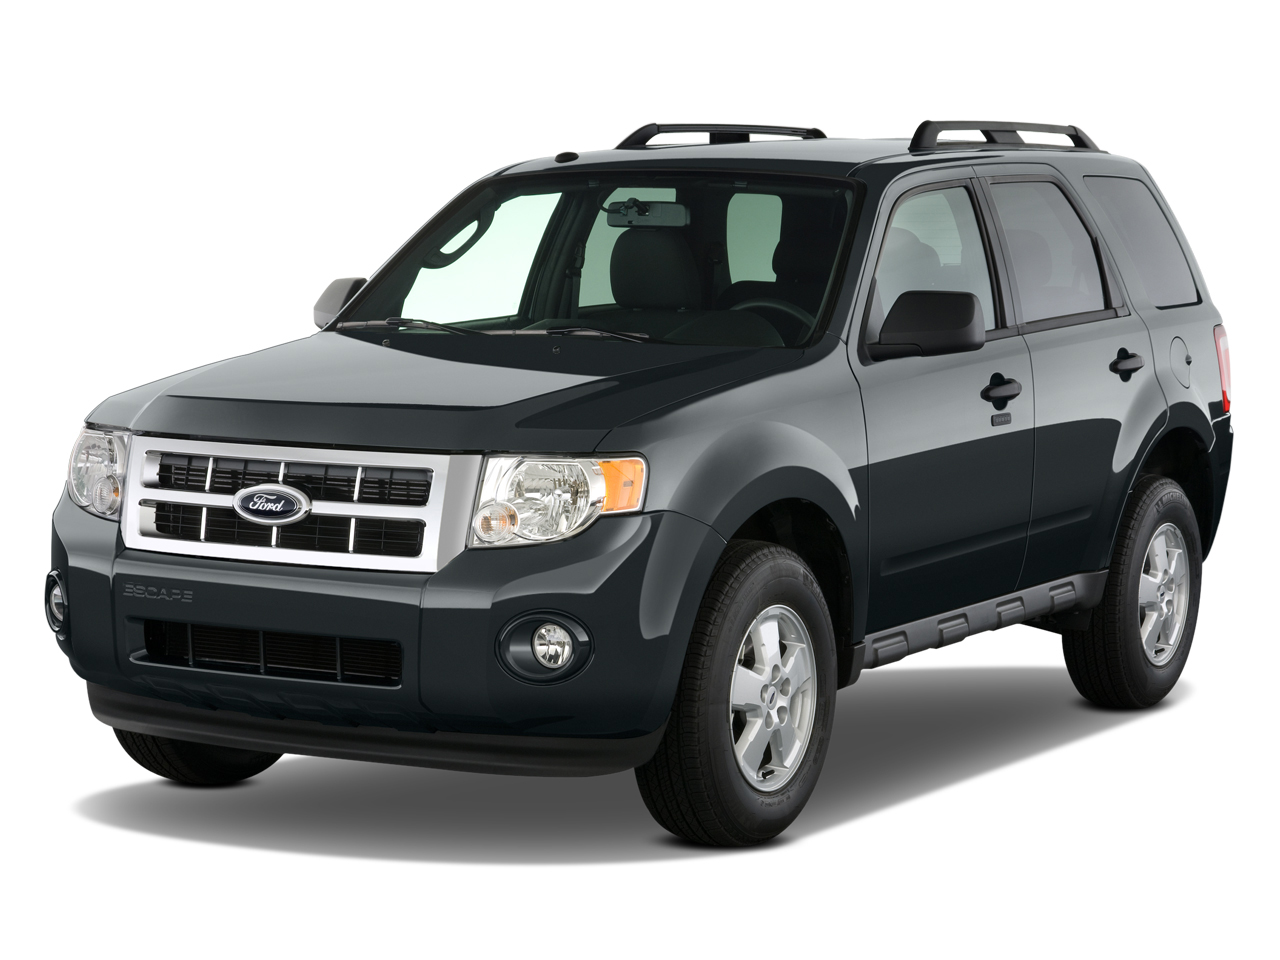 2010 Ford Escape XLT picture, exterior